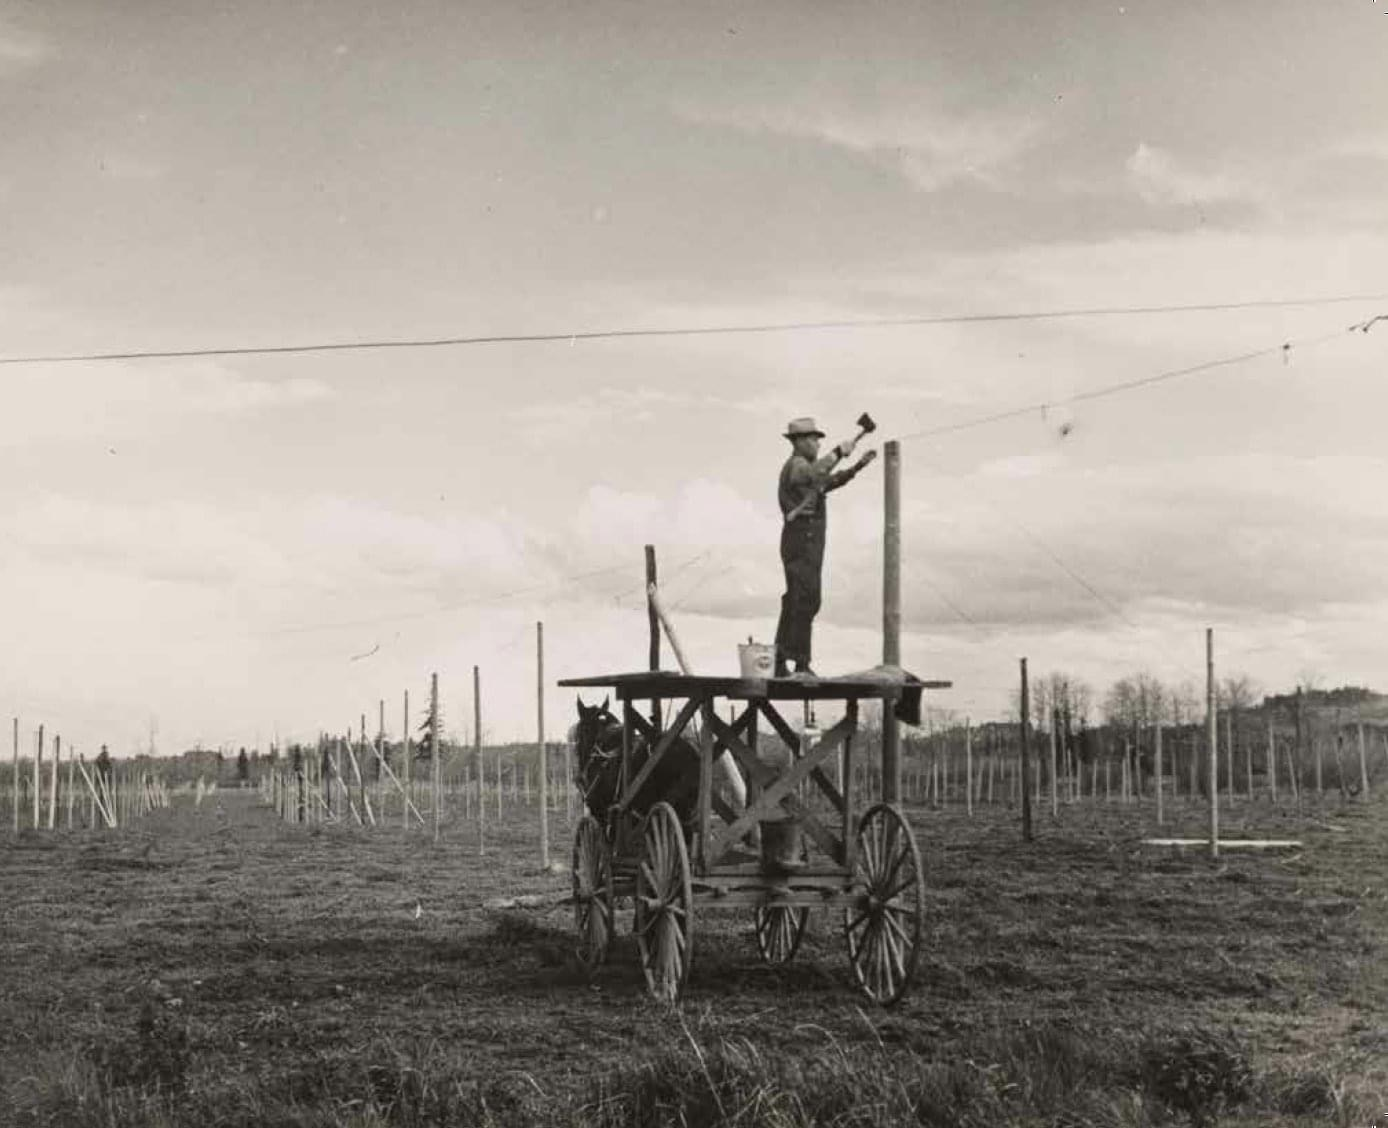 Securing wire to poles with tractor pulling high tower, 1952